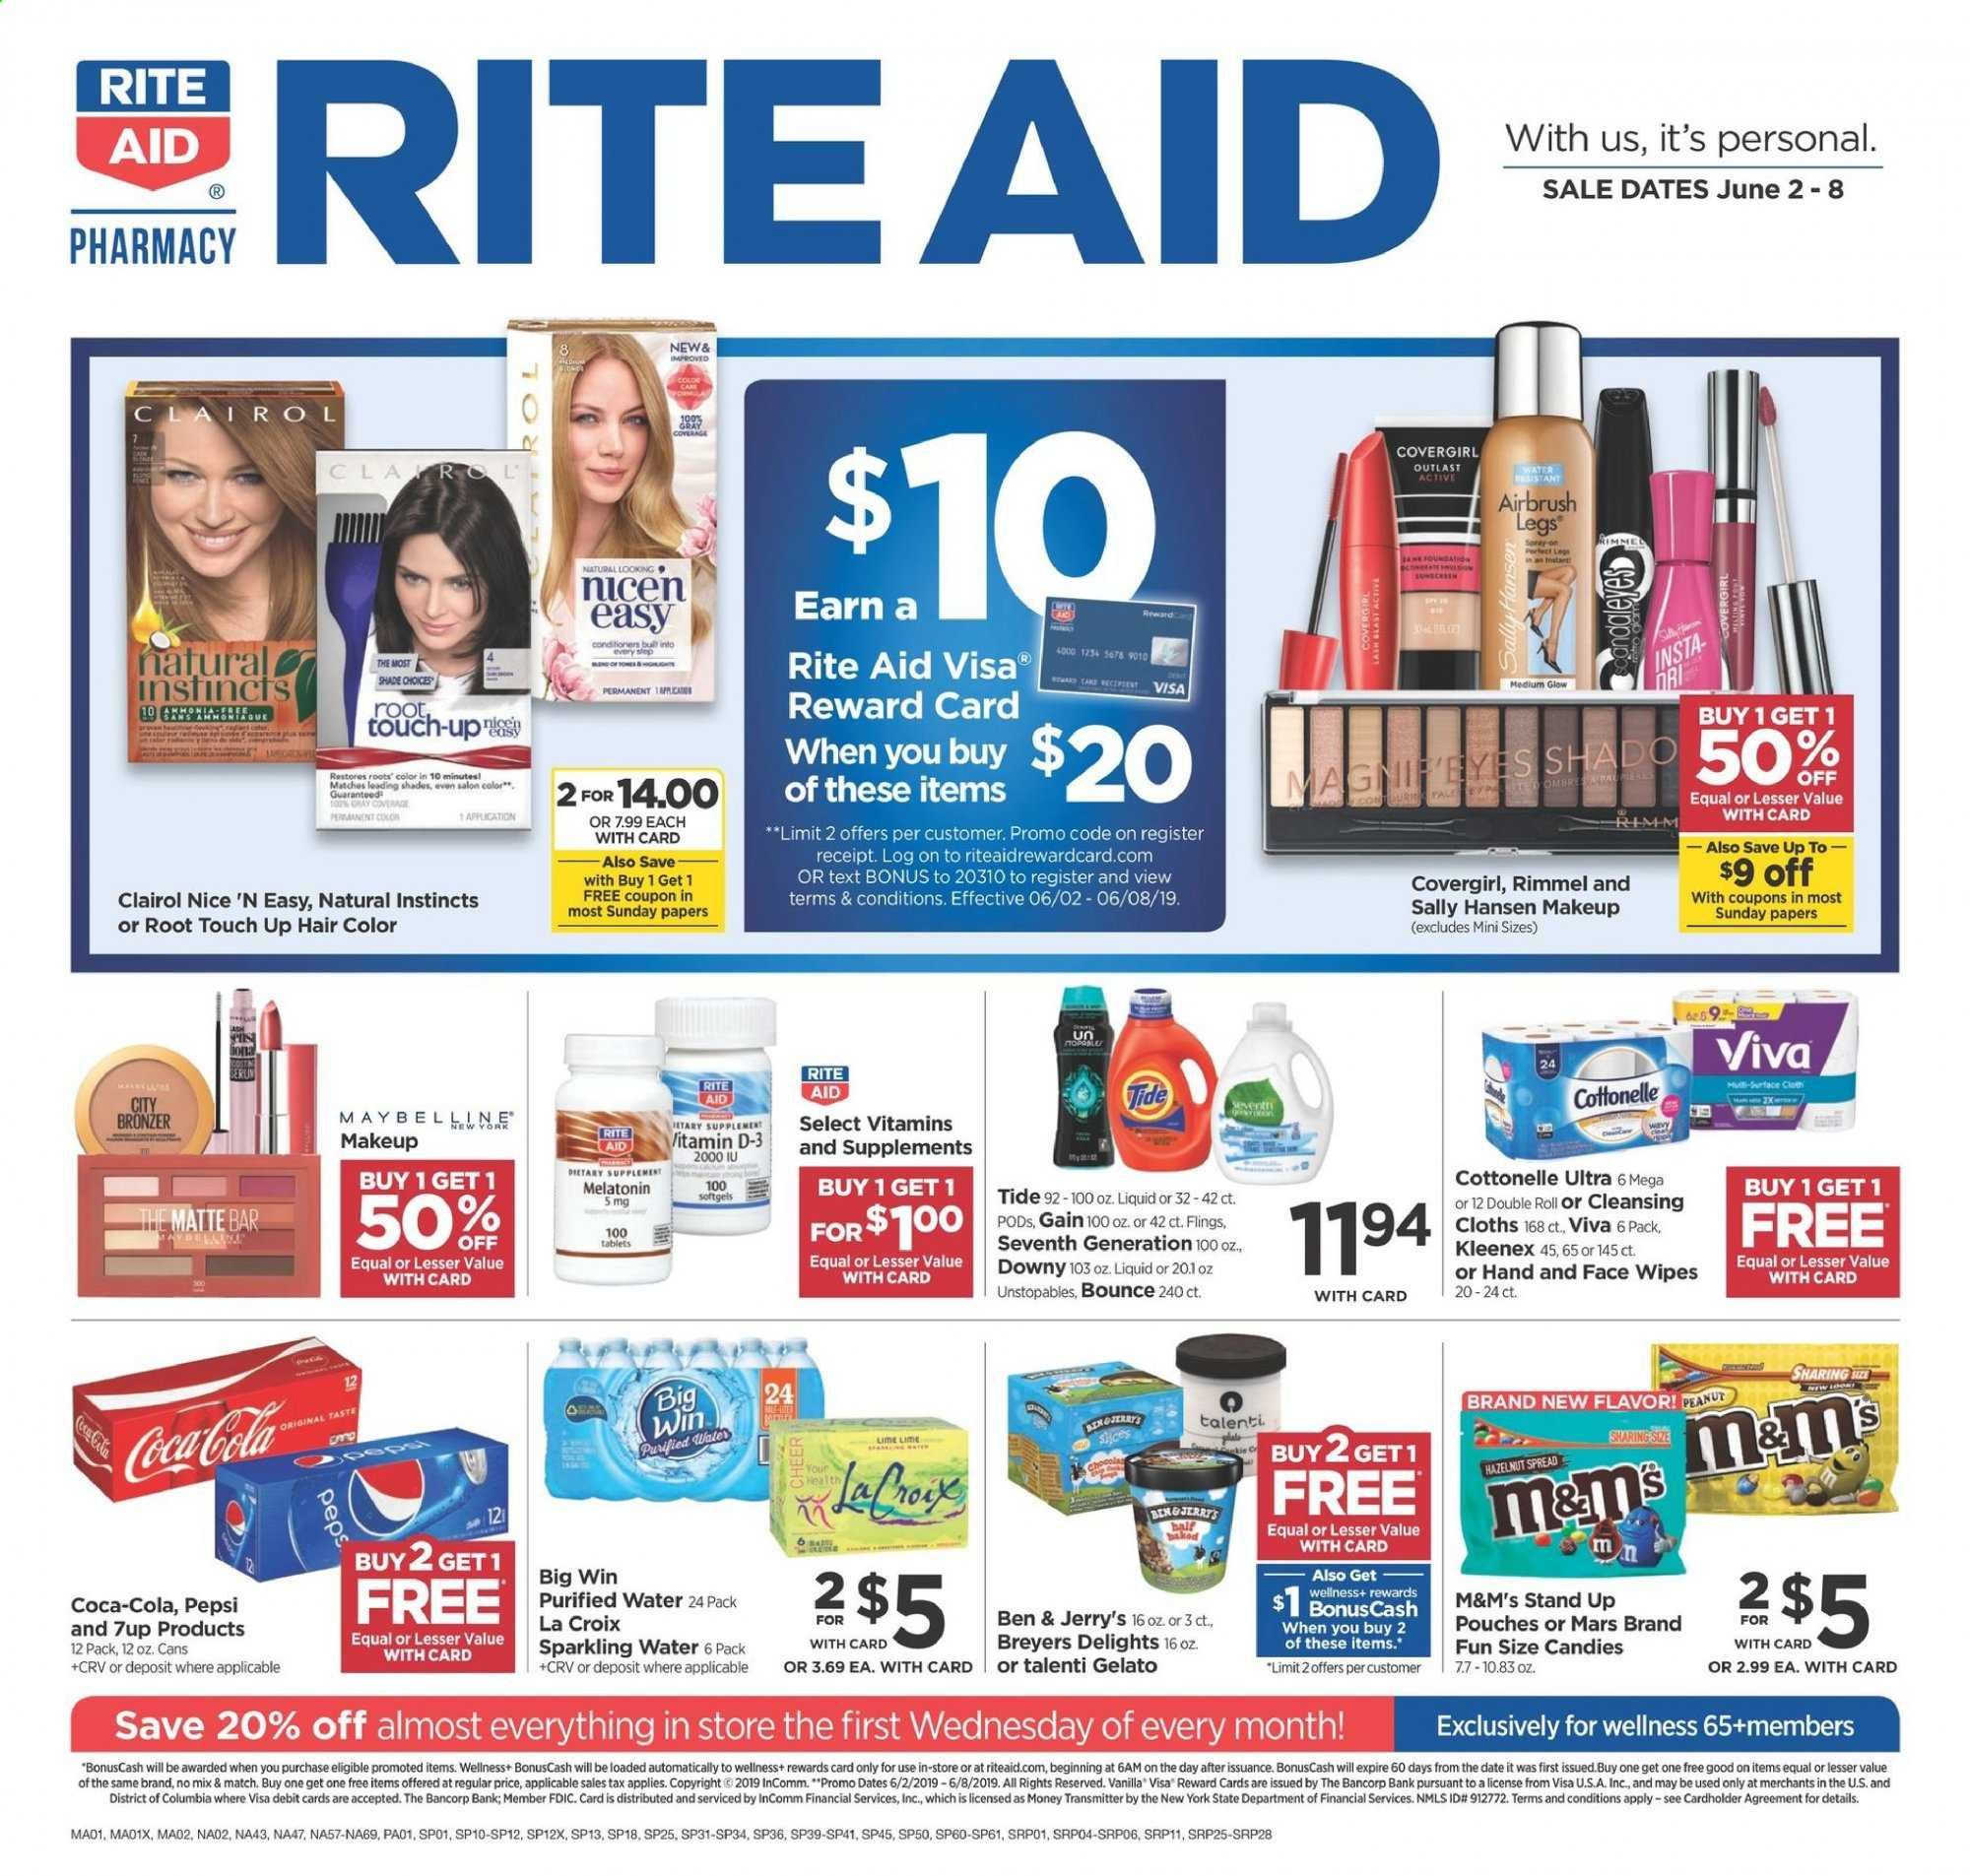 RITE AID Flyer - 06.02.2019 - 06.08.2019 - Sales products - bounce, clairol, coca-cola, cottonelle, d3, dates, downy, columbia, gain, gelato, kleenex, makeup, rimmel, sally hansen, shades, stand, tide, unstopables, wipes, pepsi, candy, sparkling water, hair color, mars, liquid, purified water, m&m's. Page 1.